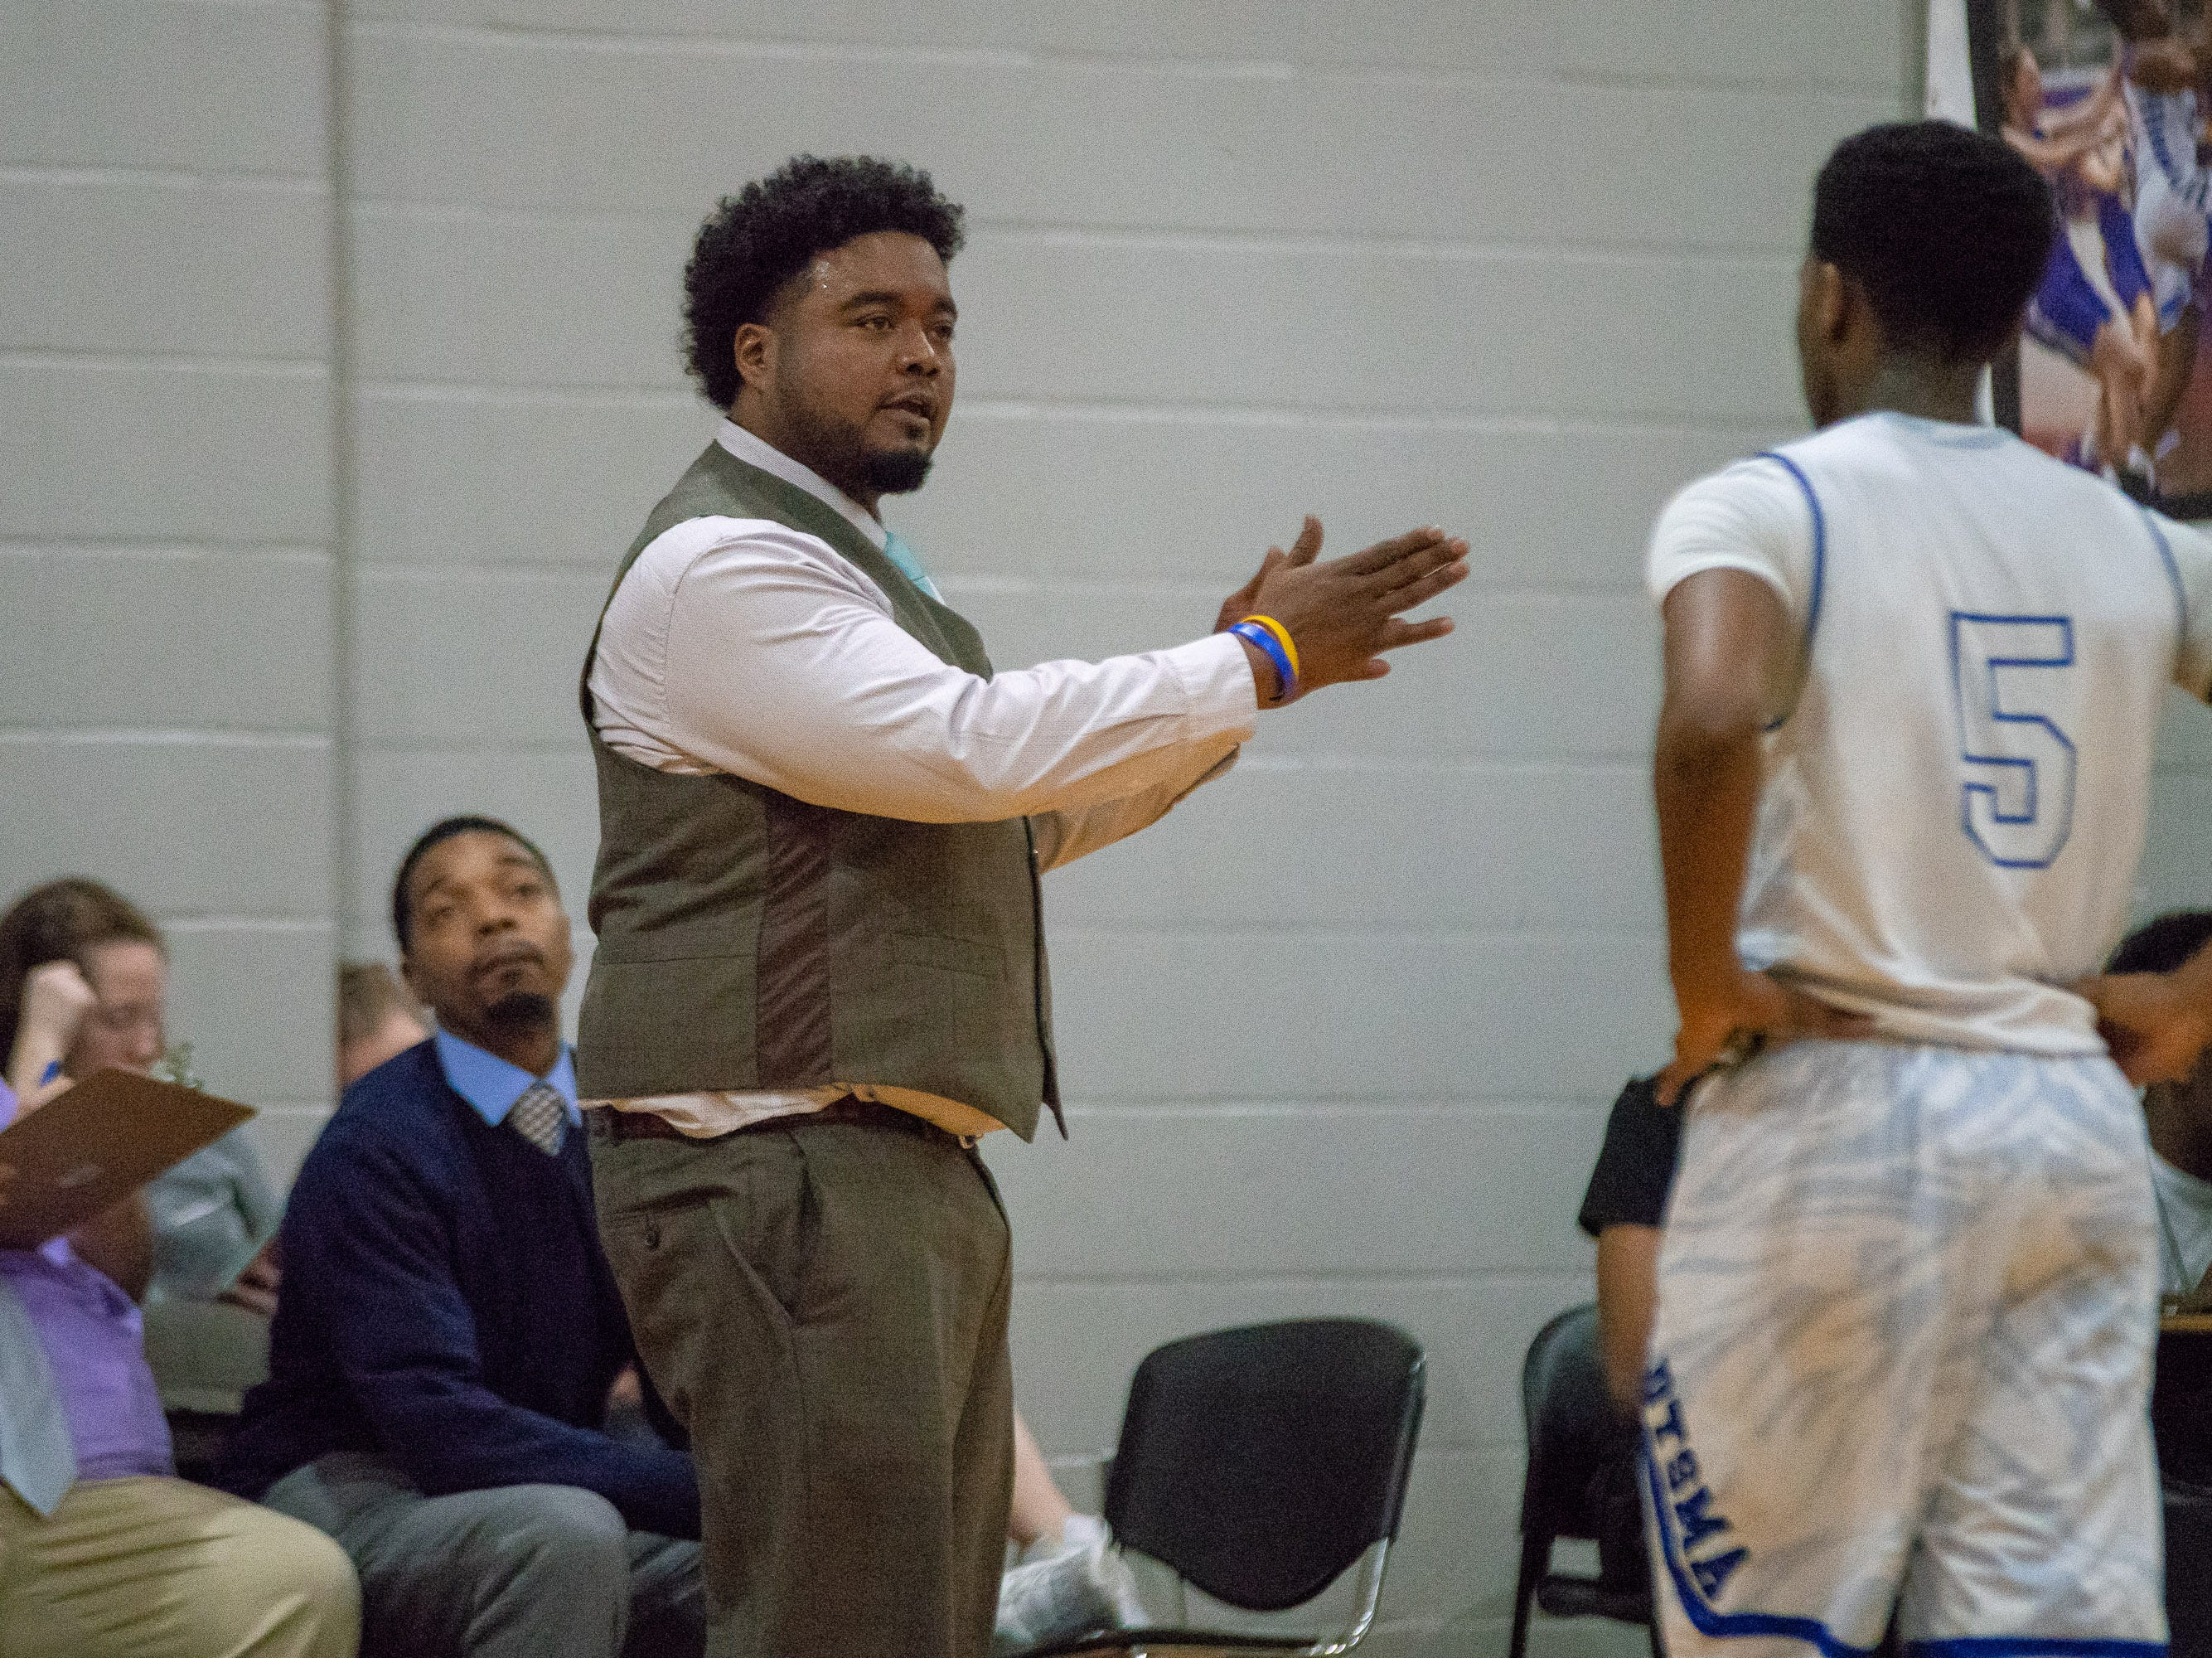 David Thibodaux's head coach Vincent Hicks coaching from the sidelines as the Acadiana high school Rams take on the David Thibodaux Bulldogs on January 8, 2019.